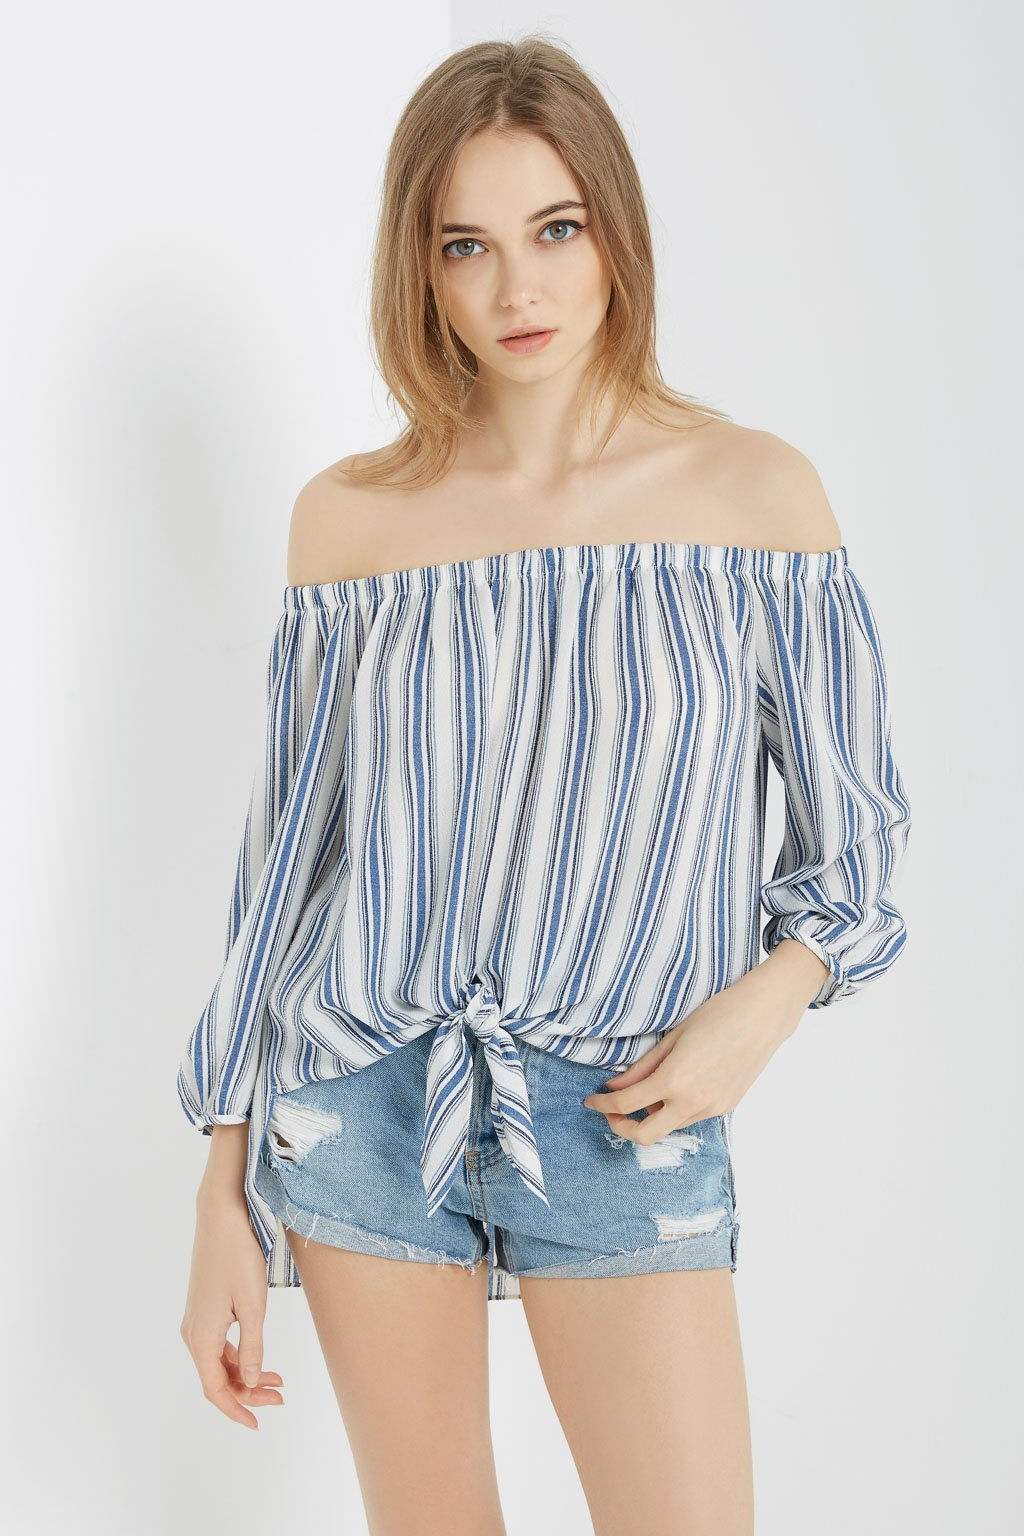 Poshsquare Tops Striped Off the Shoulder Top